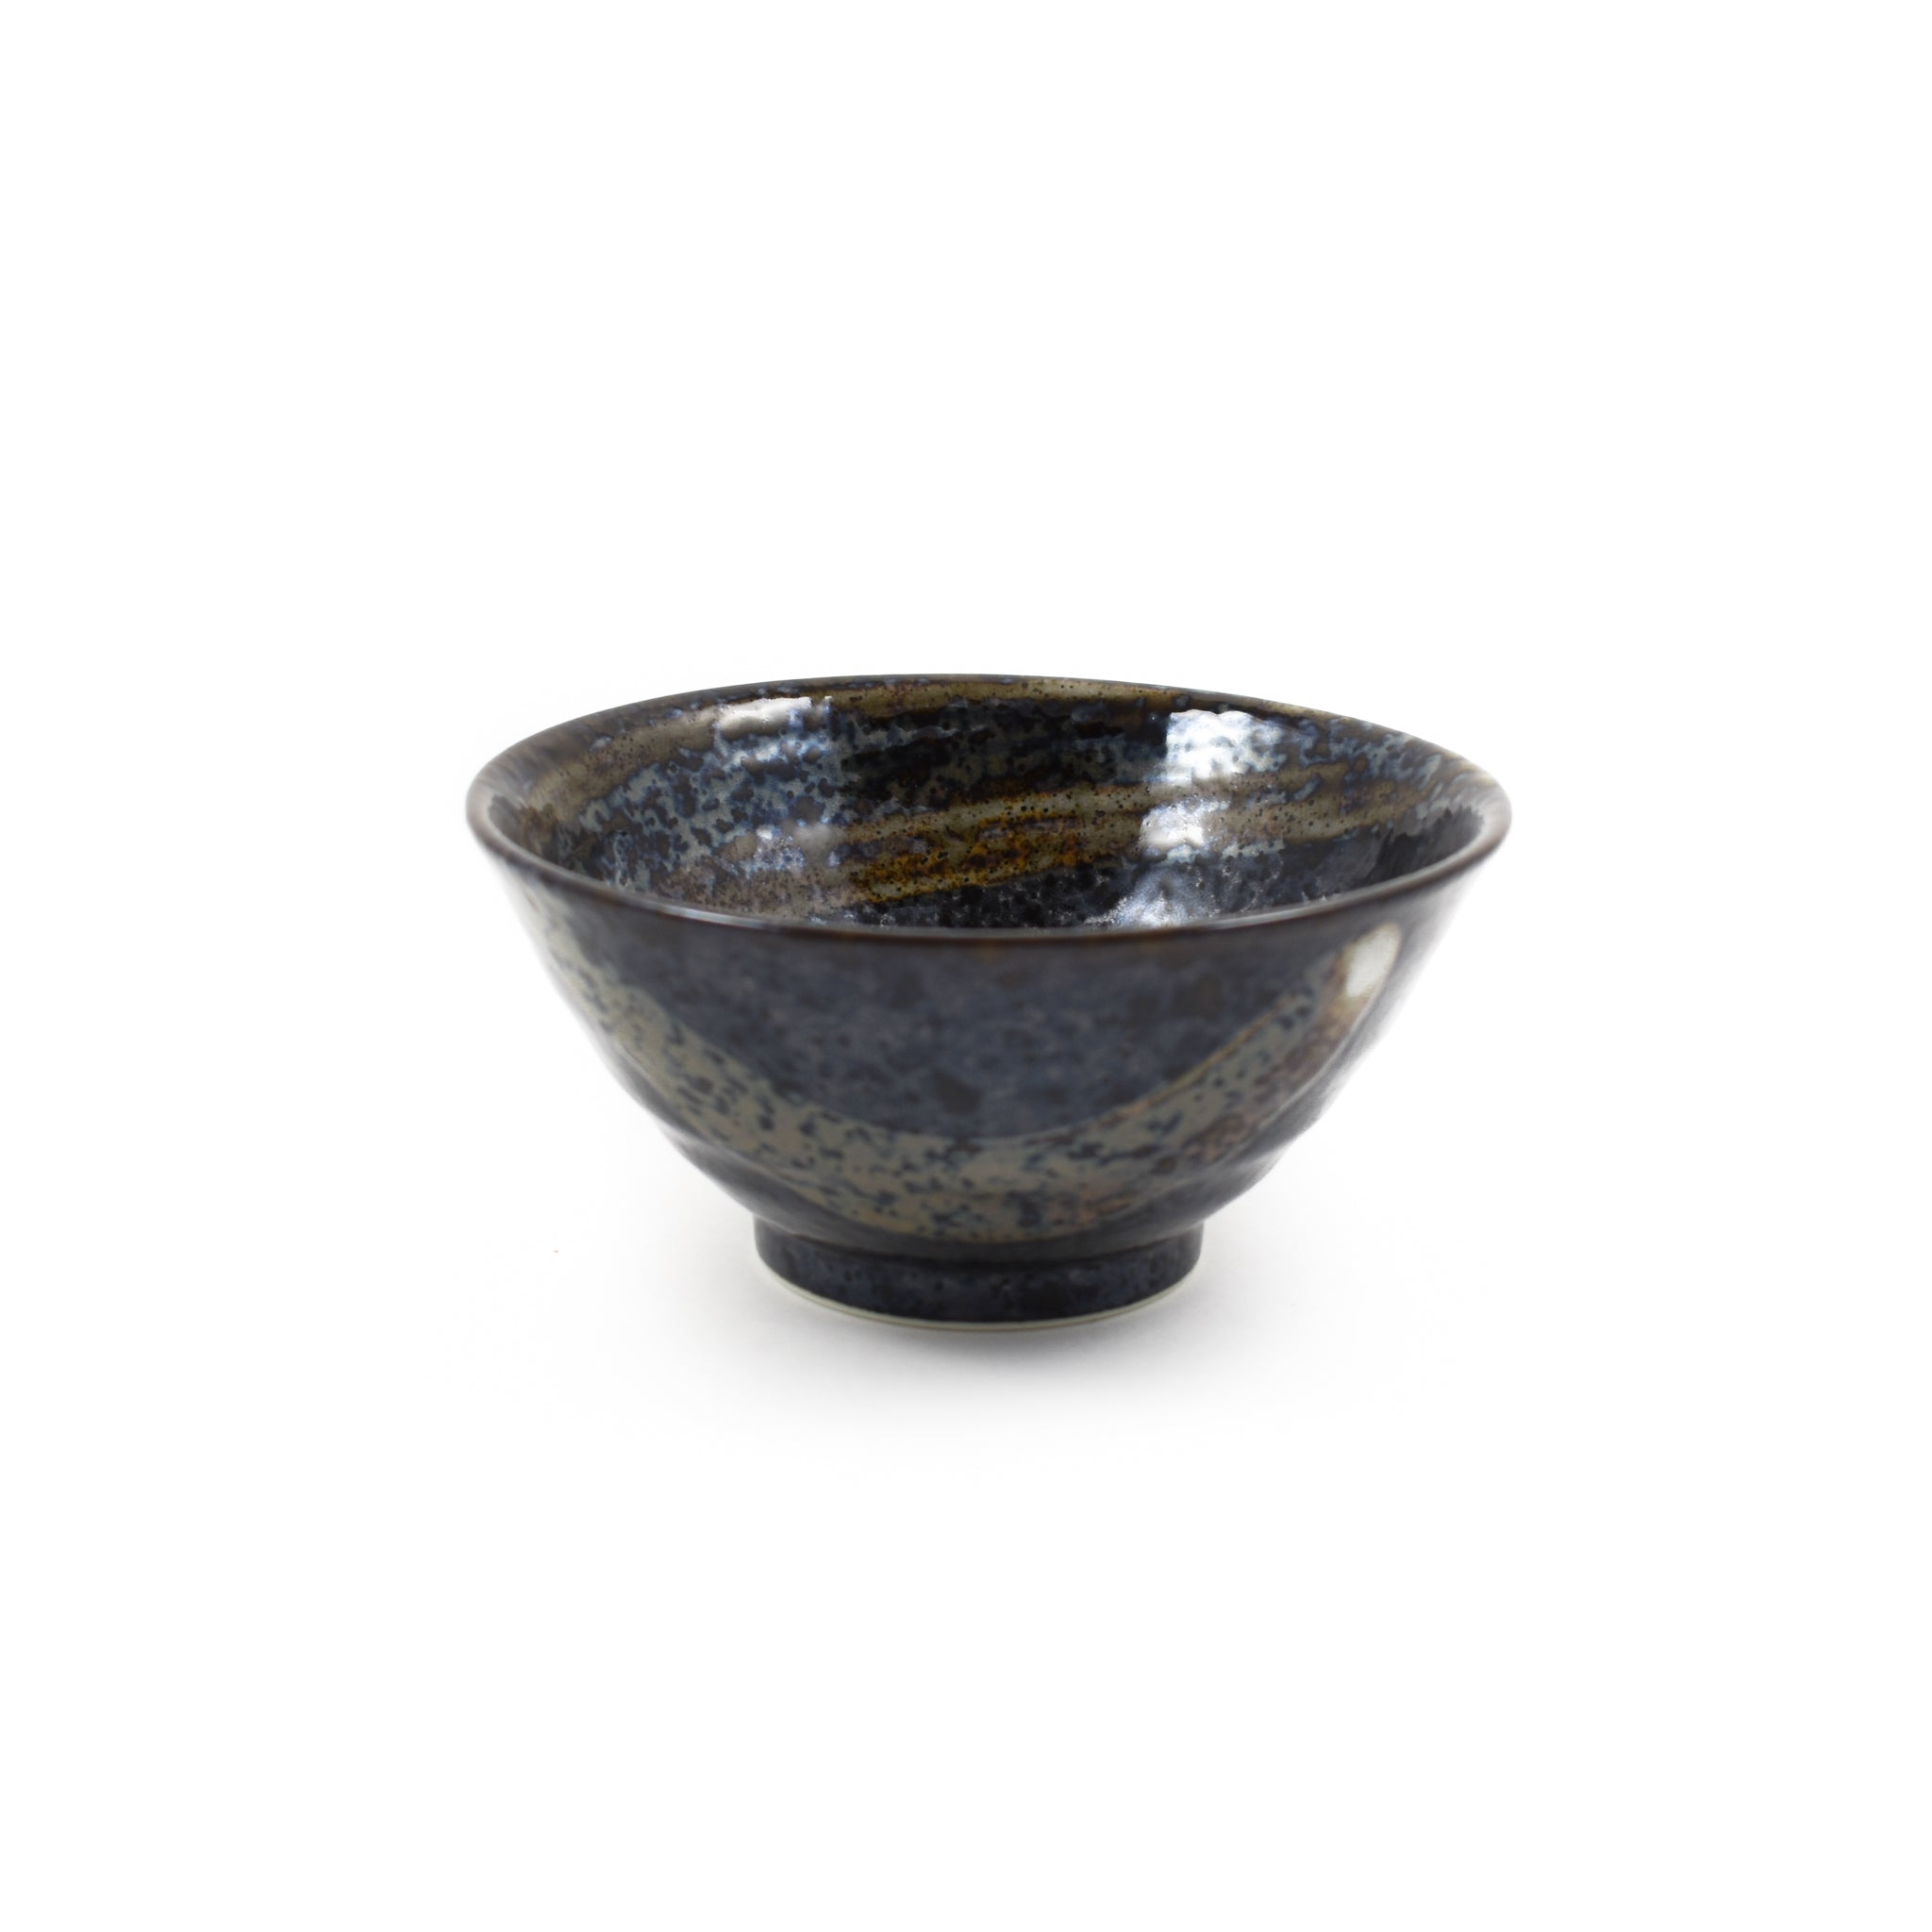 Kiji Stoneware & Ceramics Karasuba-Iro Medium Rice Bowl Tableware Japanese Tableware Japanese Food